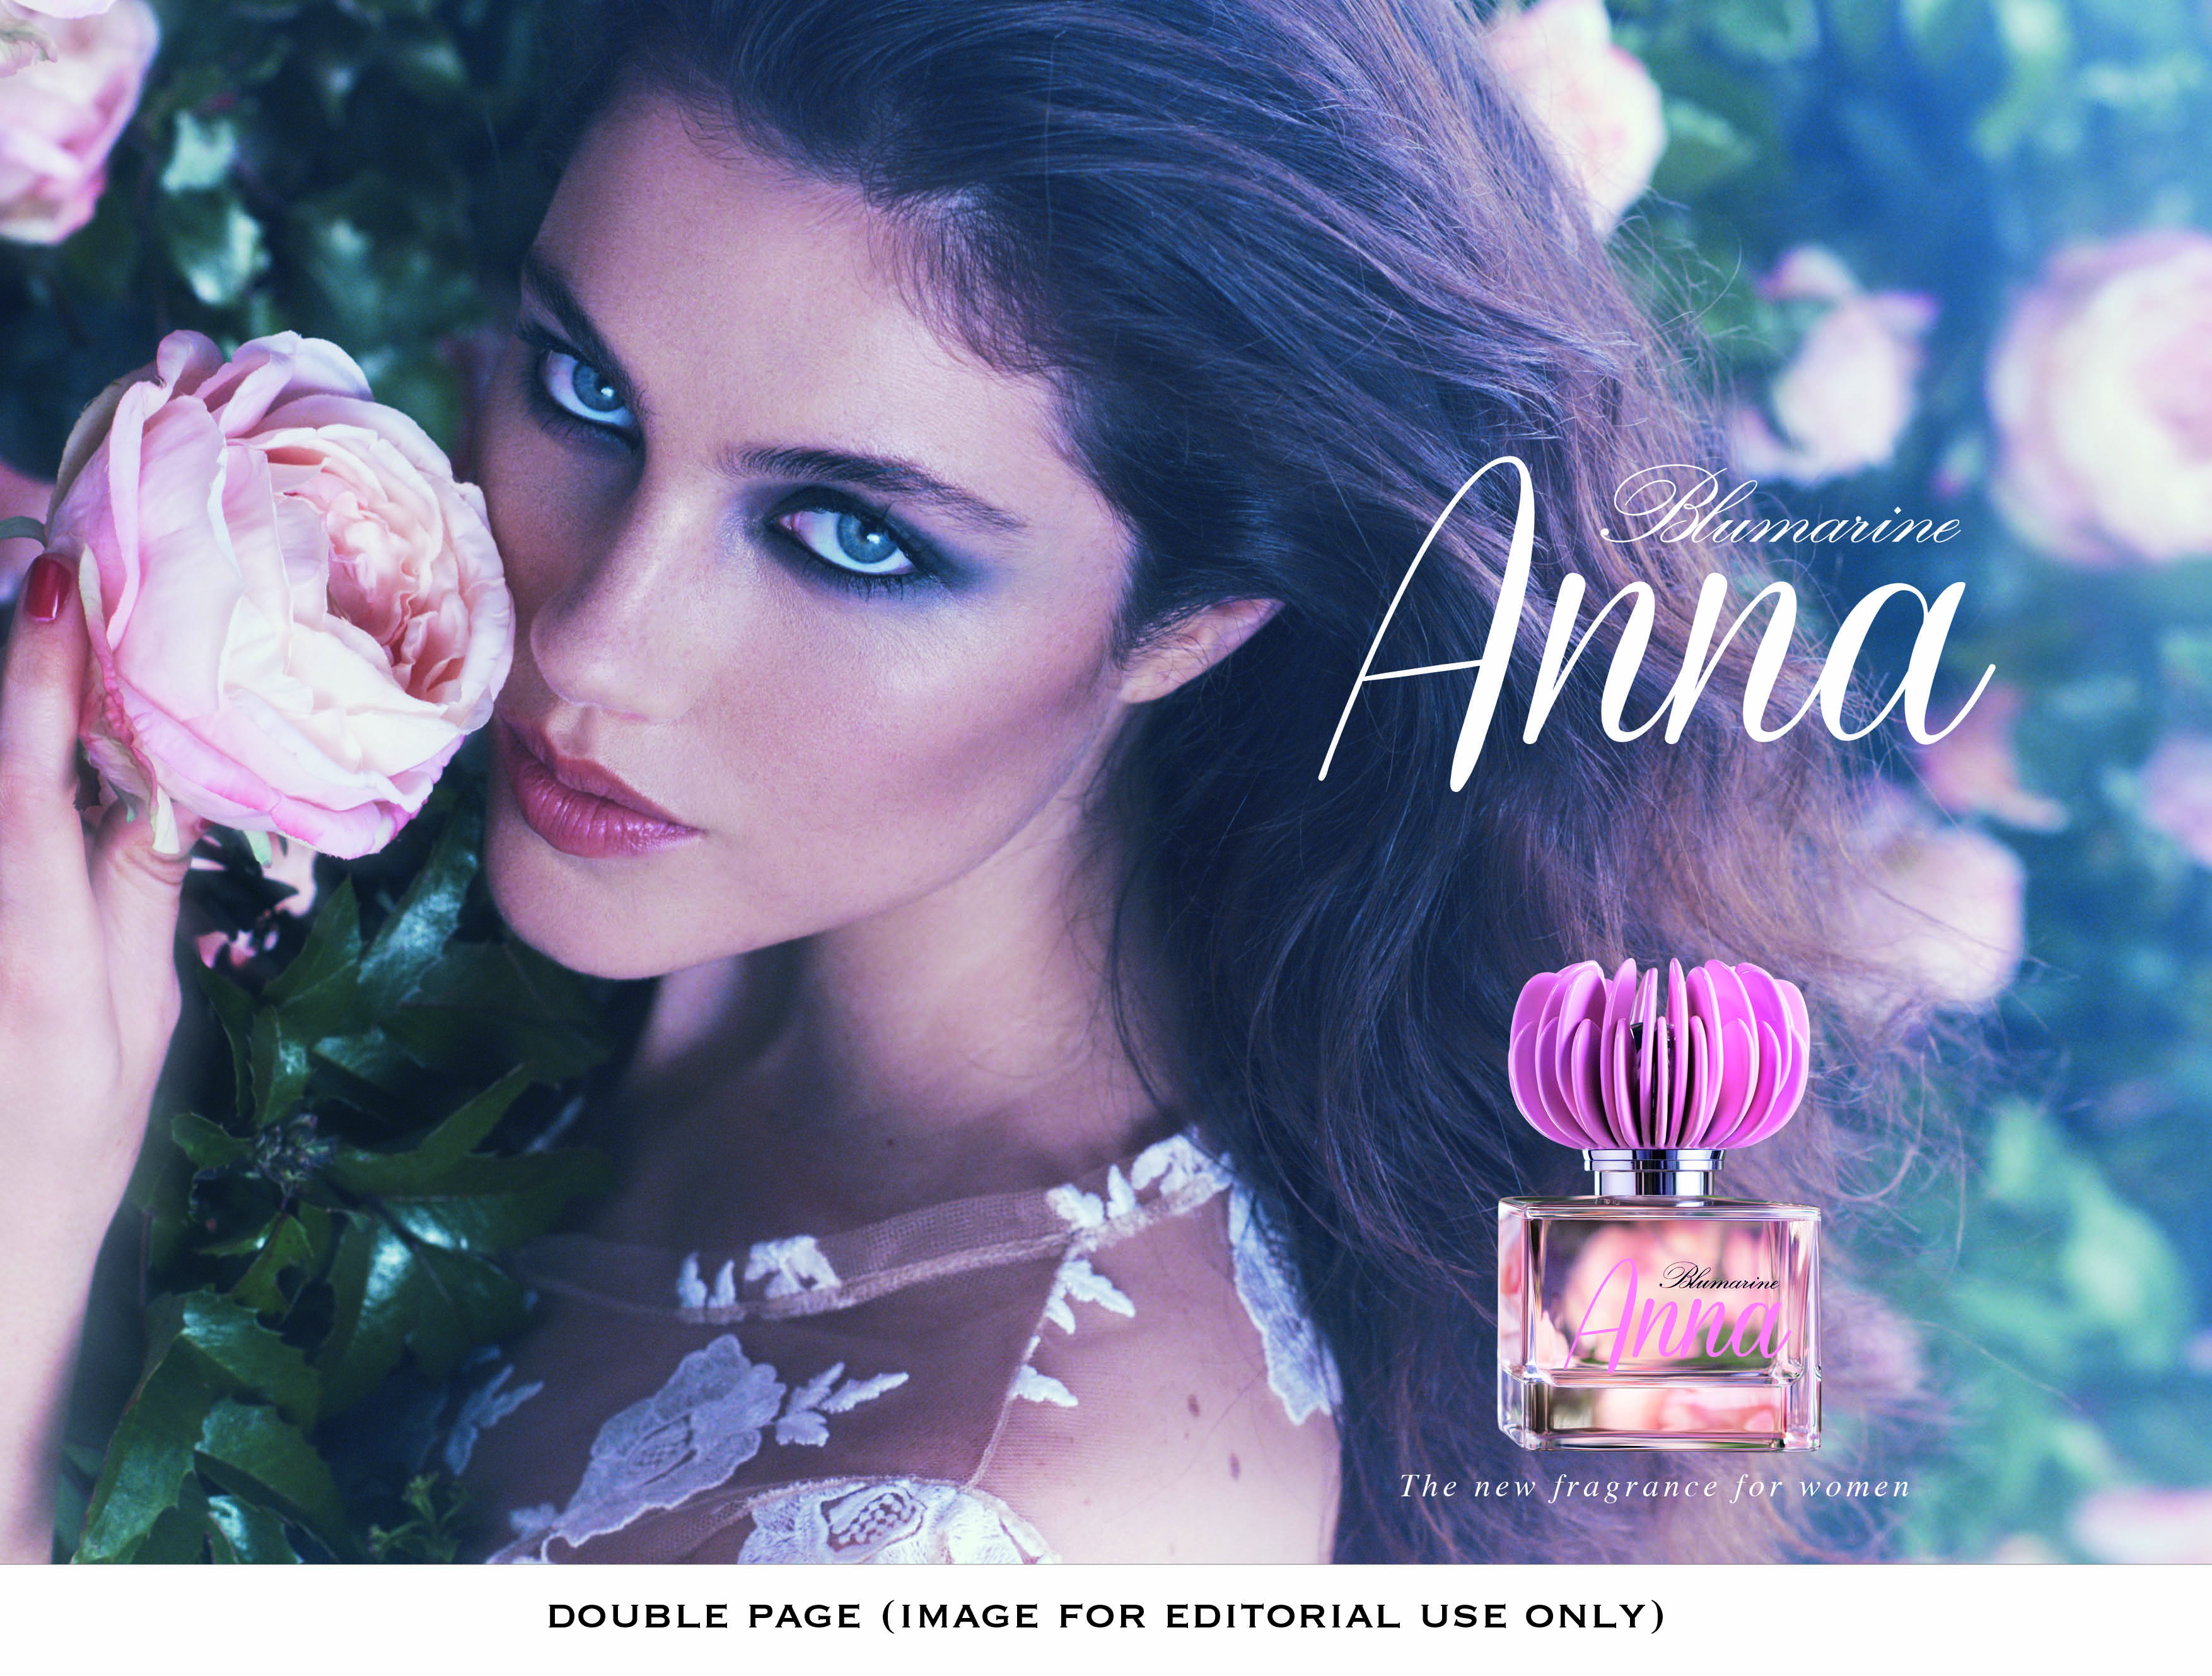 Blumarine Anna Double Page